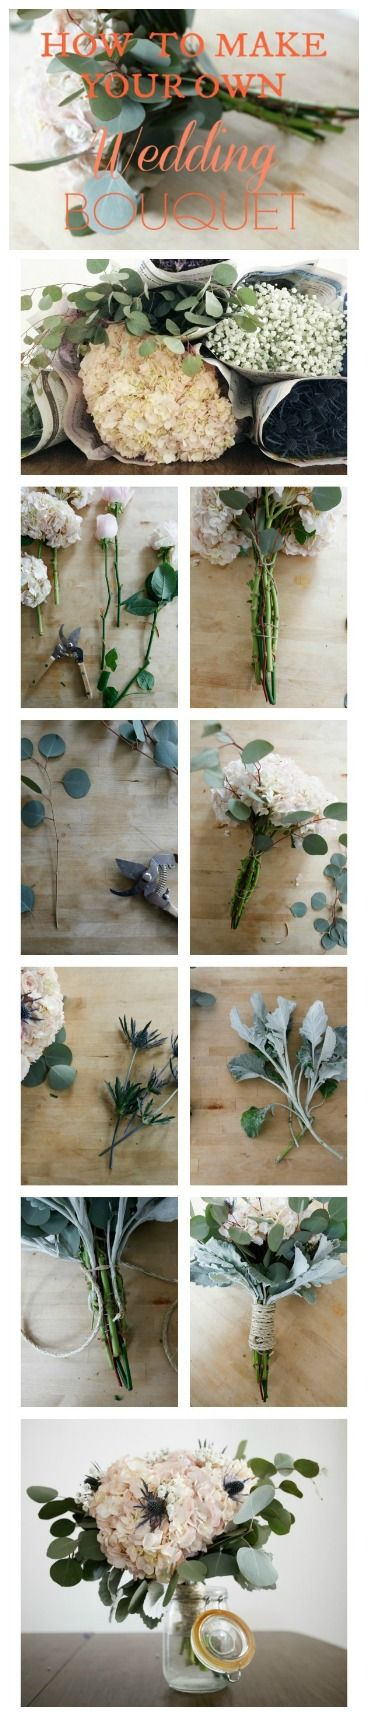 Step By Step : How to Make Your Own Perfect Bouquet